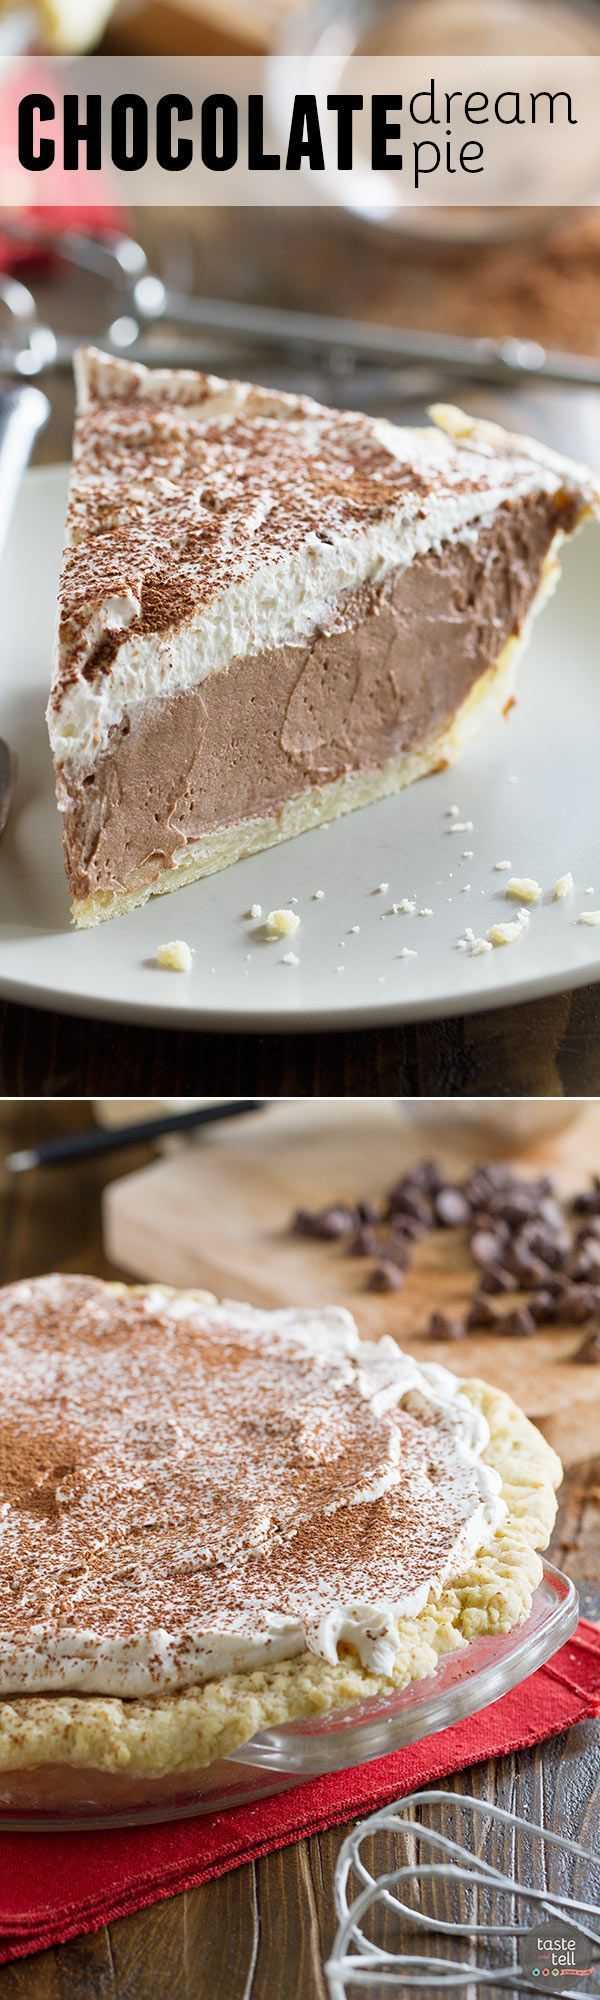 Rich, creamy and silky, this Chocolate Dream Pie is a chocolate lovers dream! A creamy chocolate filling is topped with whipped cream in this easy, crowd pleasing pie.